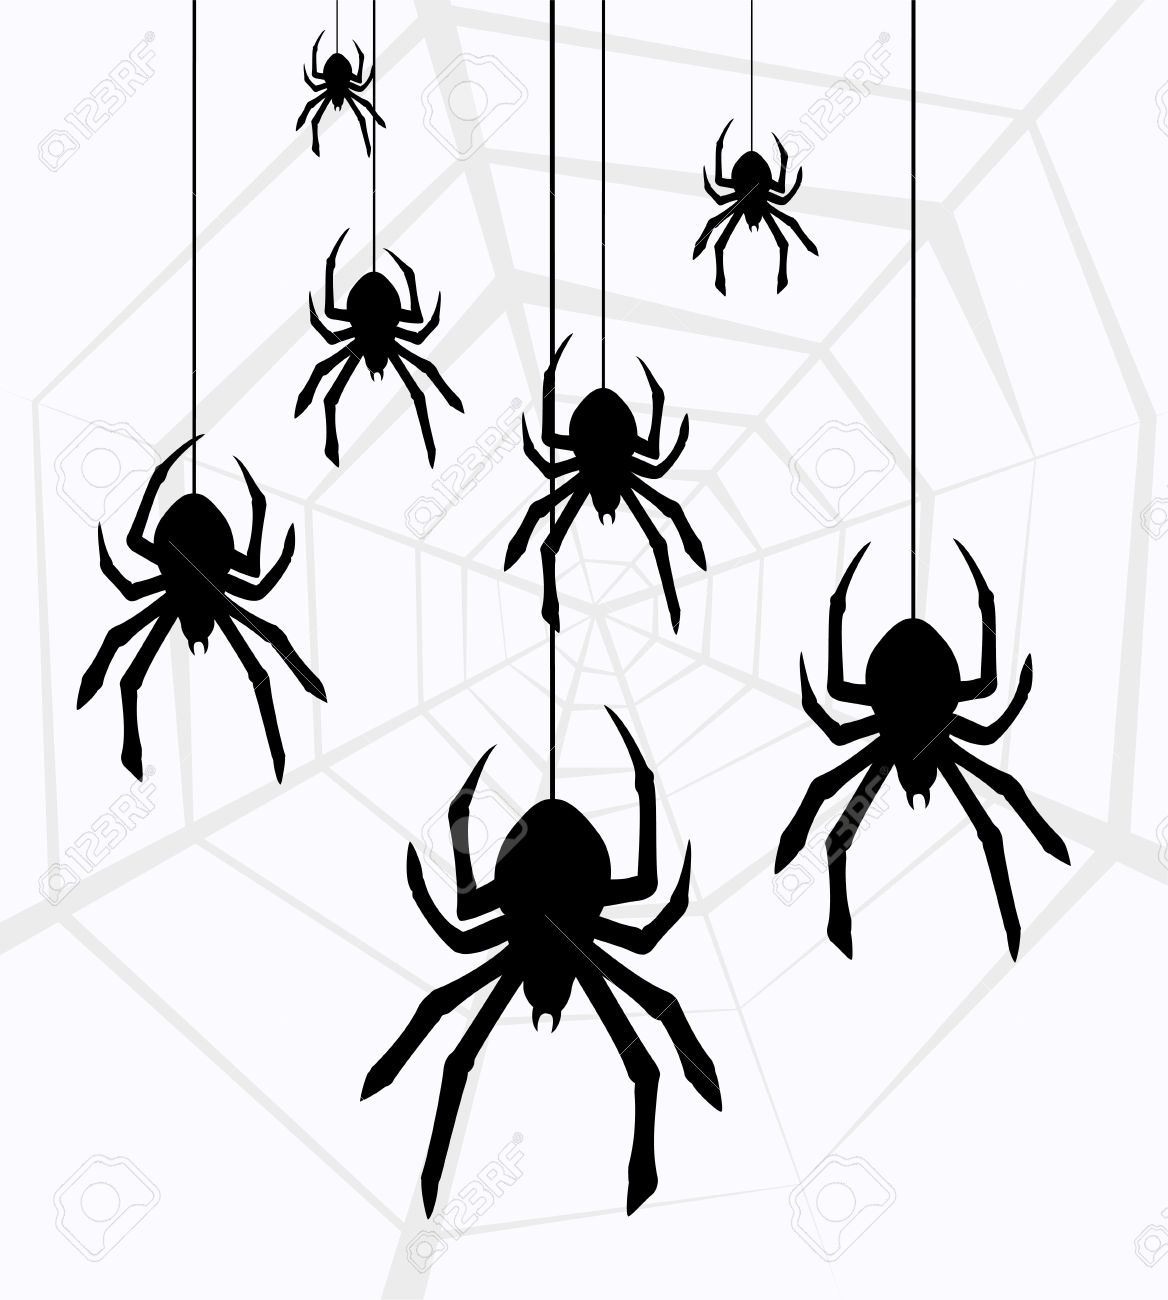 Spiders clipart.